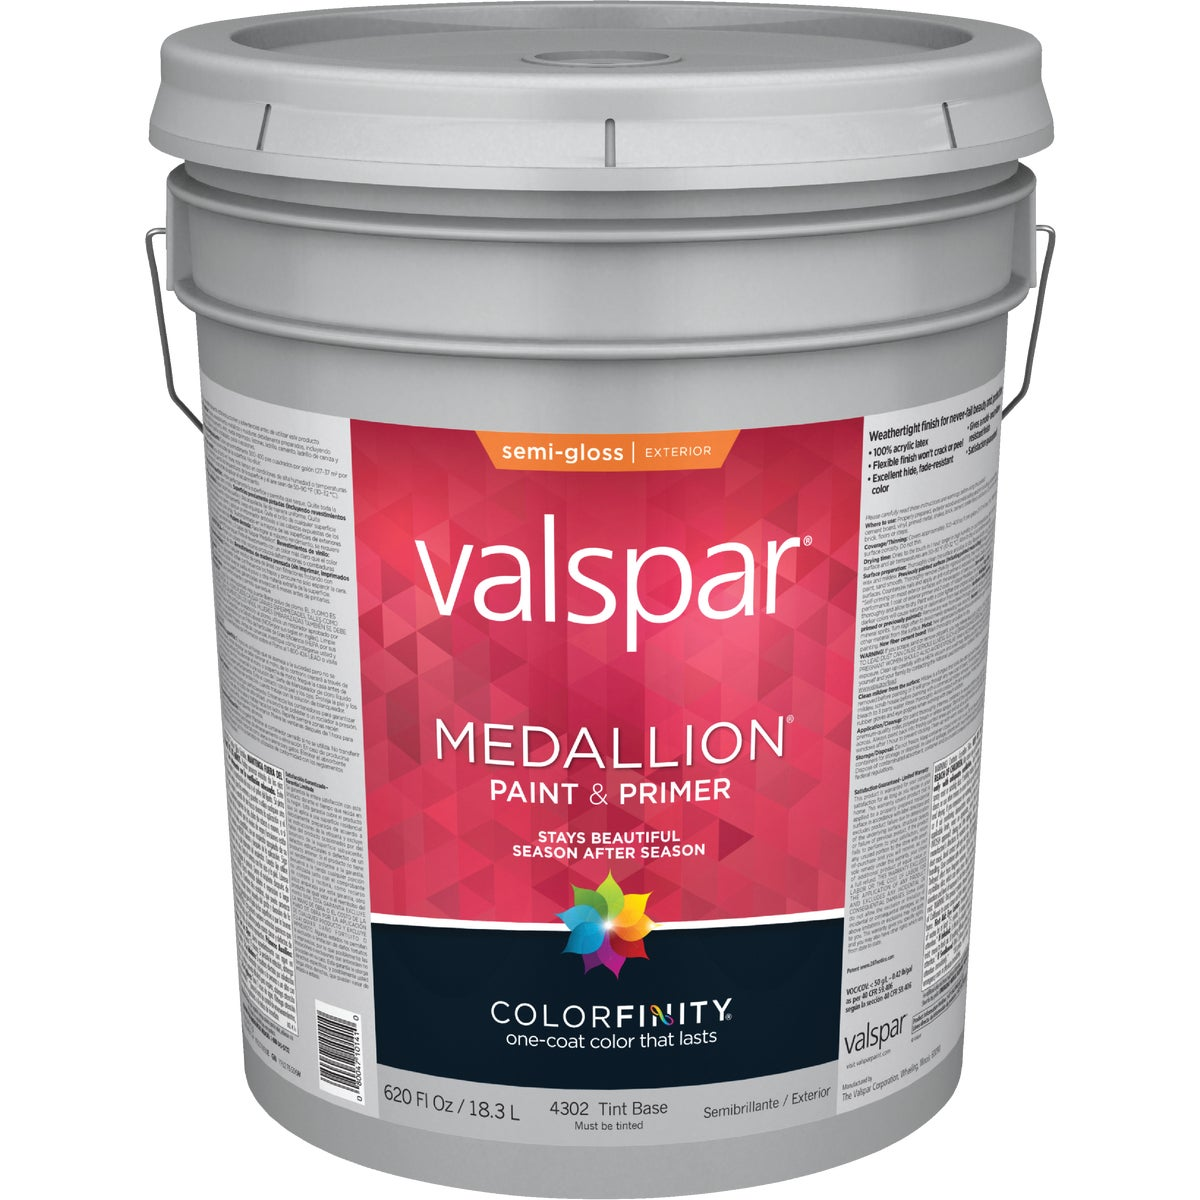 EXT S/G TINT BS PAINT - 027.0004302.008 by Valspar Corp